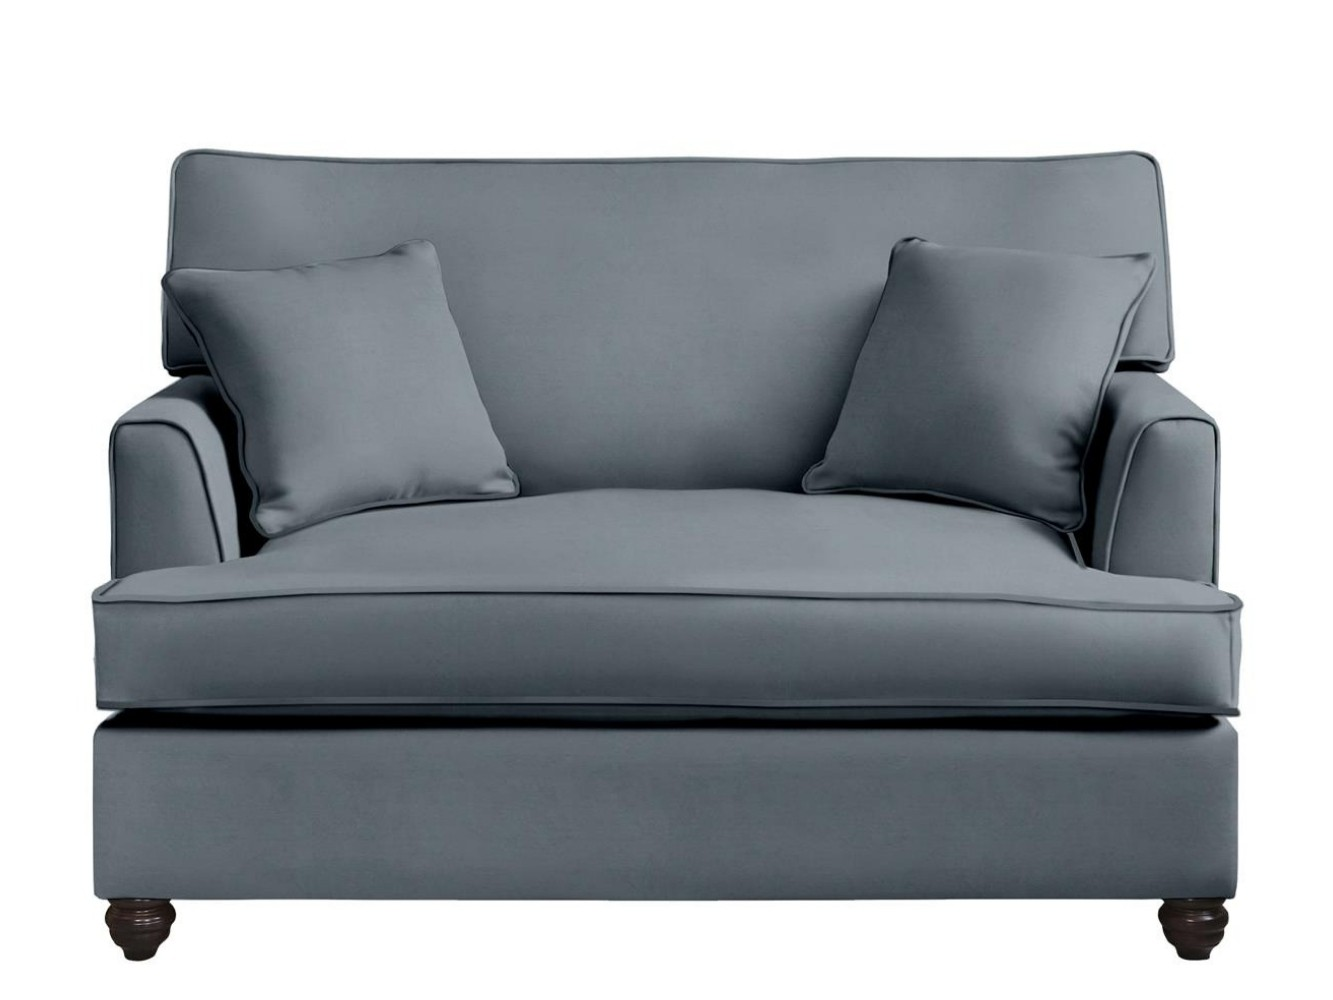 This is how I look in House Velvet Gunmetal with siliconized hollow fibre seat cushions